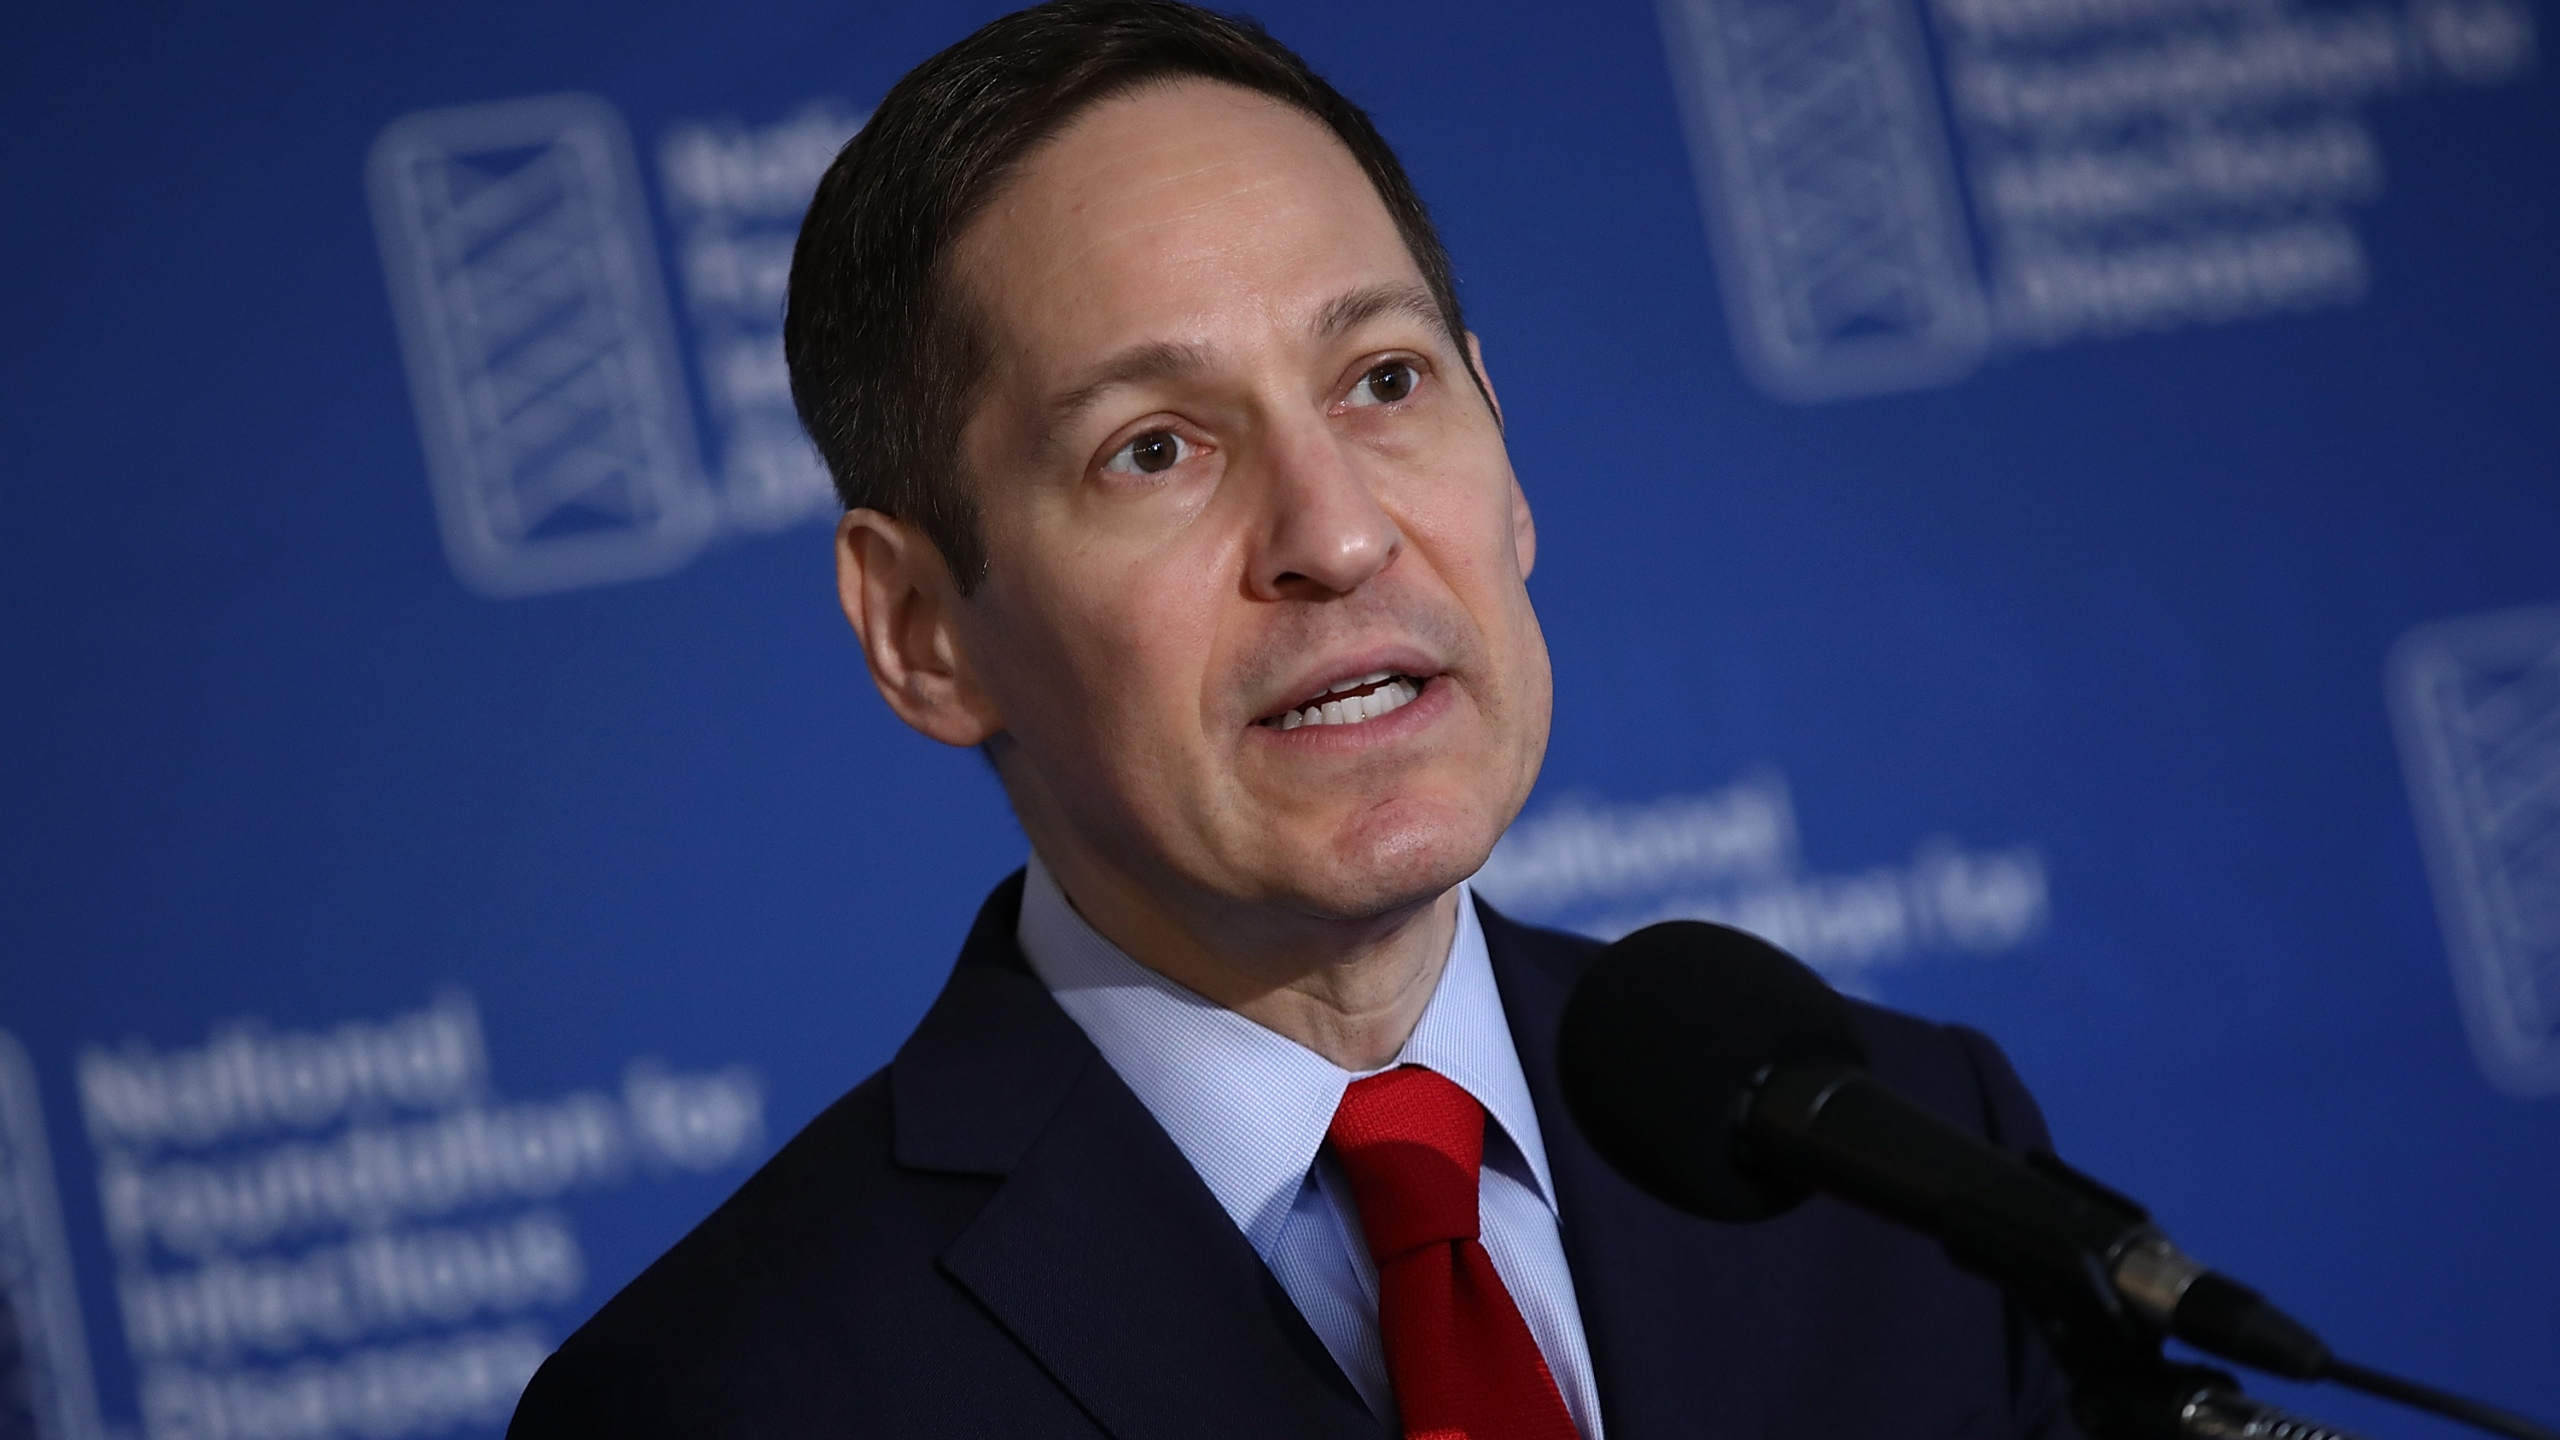 Dr. Tom Frieden, director of the Centers for Disease Control and Prevention, delivers remarks during a press conference in Washington, D.C. on Sept. 29, 2016. (Credit: Win McNamee/Getty Images)